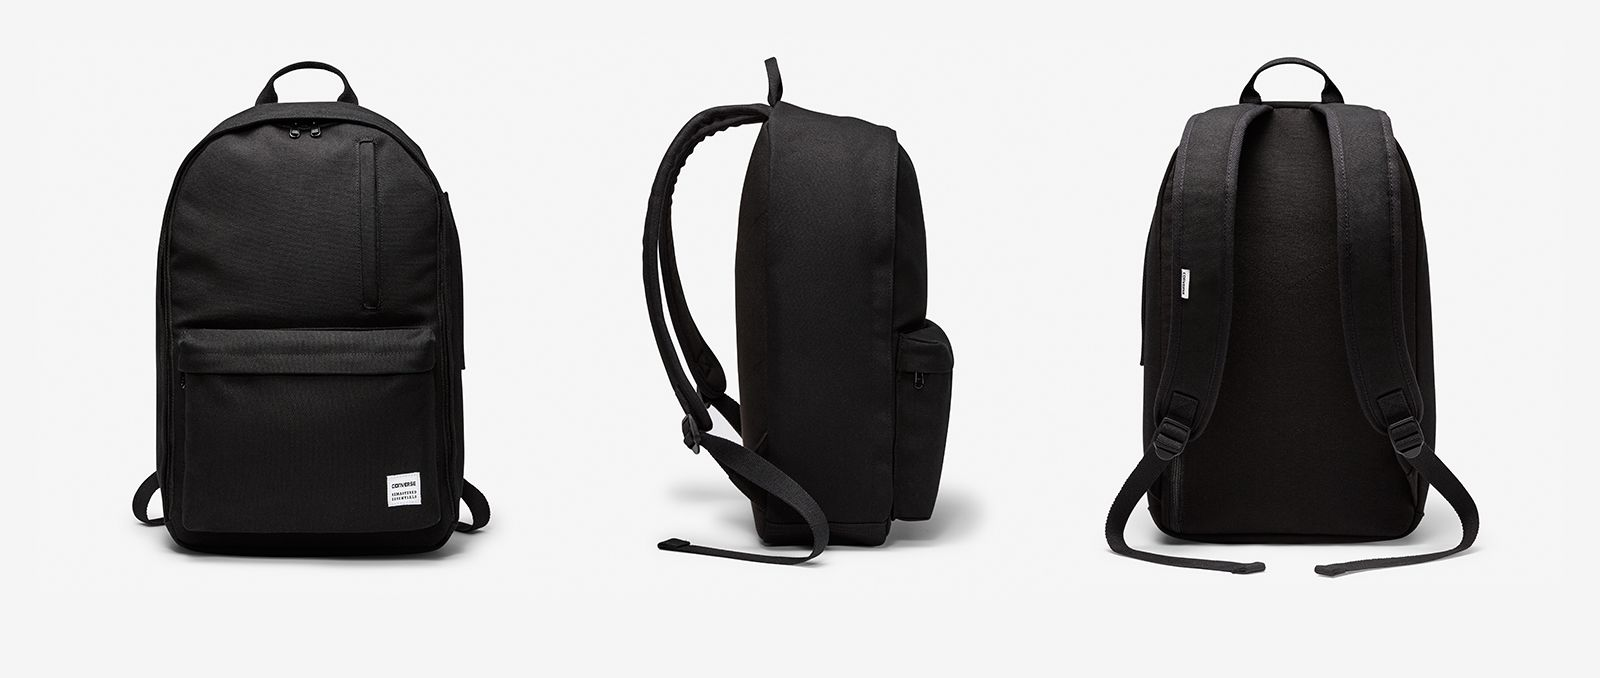 converse backpack p2_backpack_slp_fst_dt.jpg PHJEIGZ